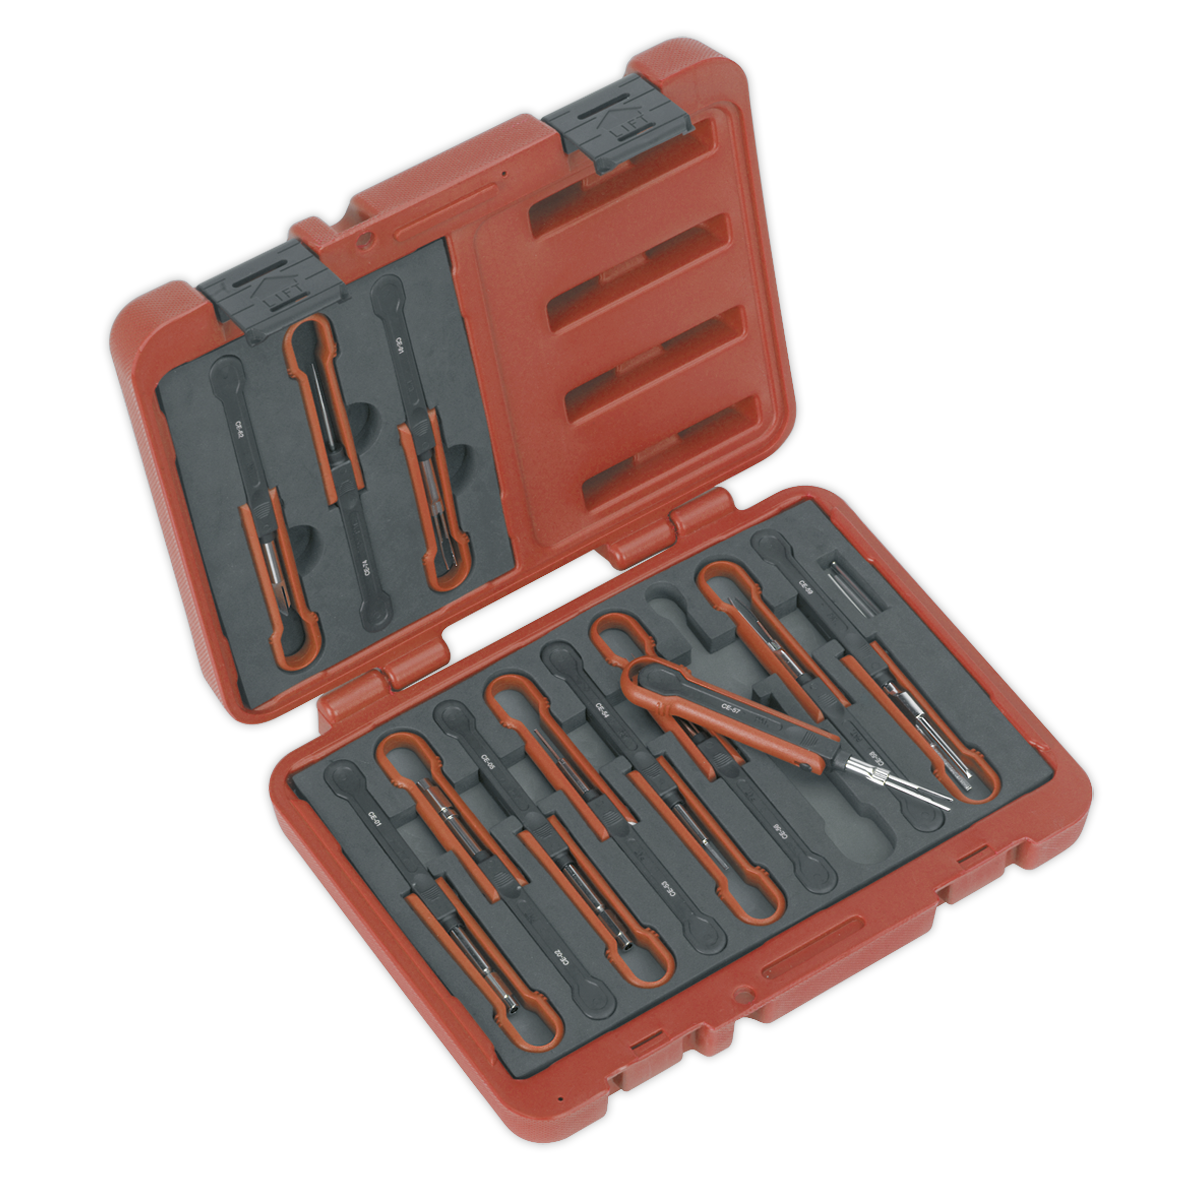 Universal Cable Ejection Tool Set 15pc Sealey VS9201 by Sealey